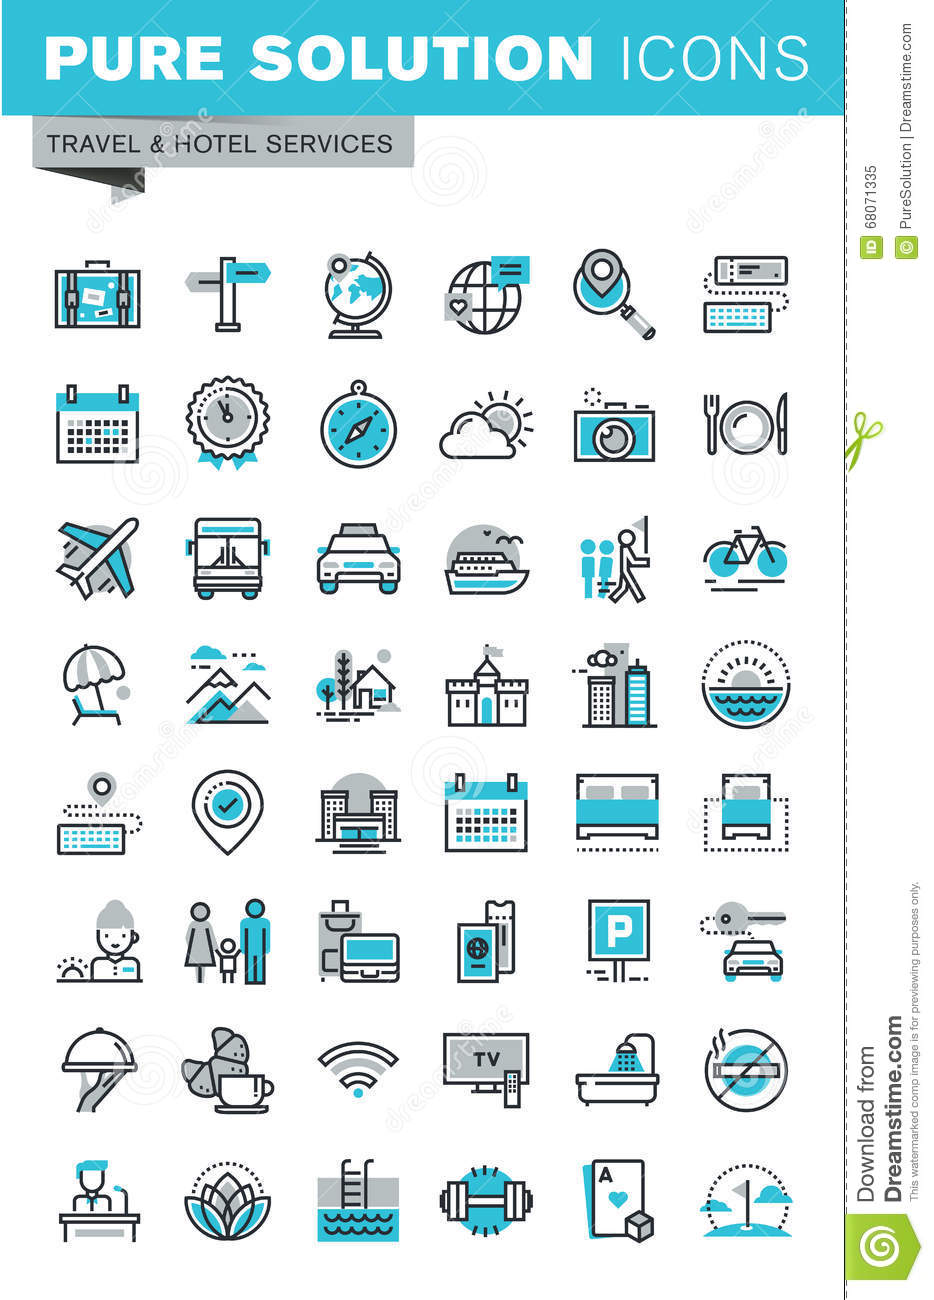 Hotel Services And Facilities Icons Set 2 Blue Cartoon Vector 32058417